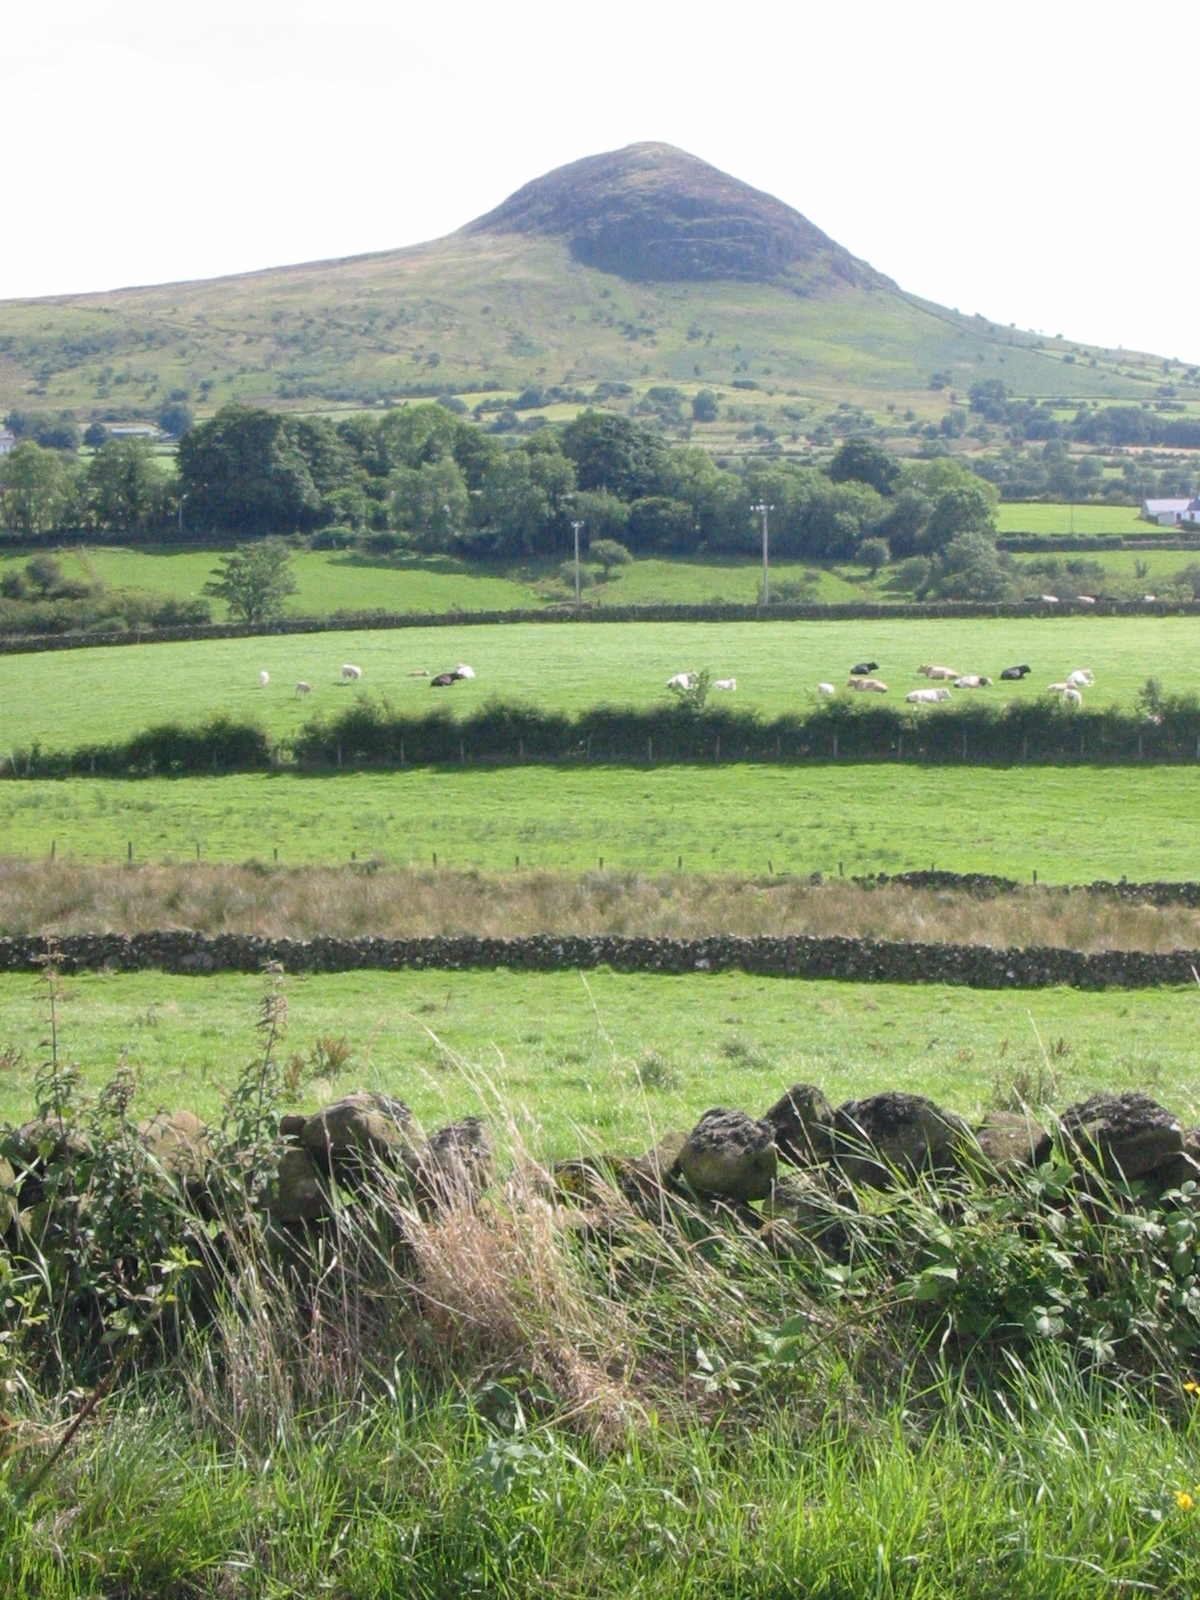 Slemish, County Antrim, where Patrick is said to have worked as a shepherd while a slave.